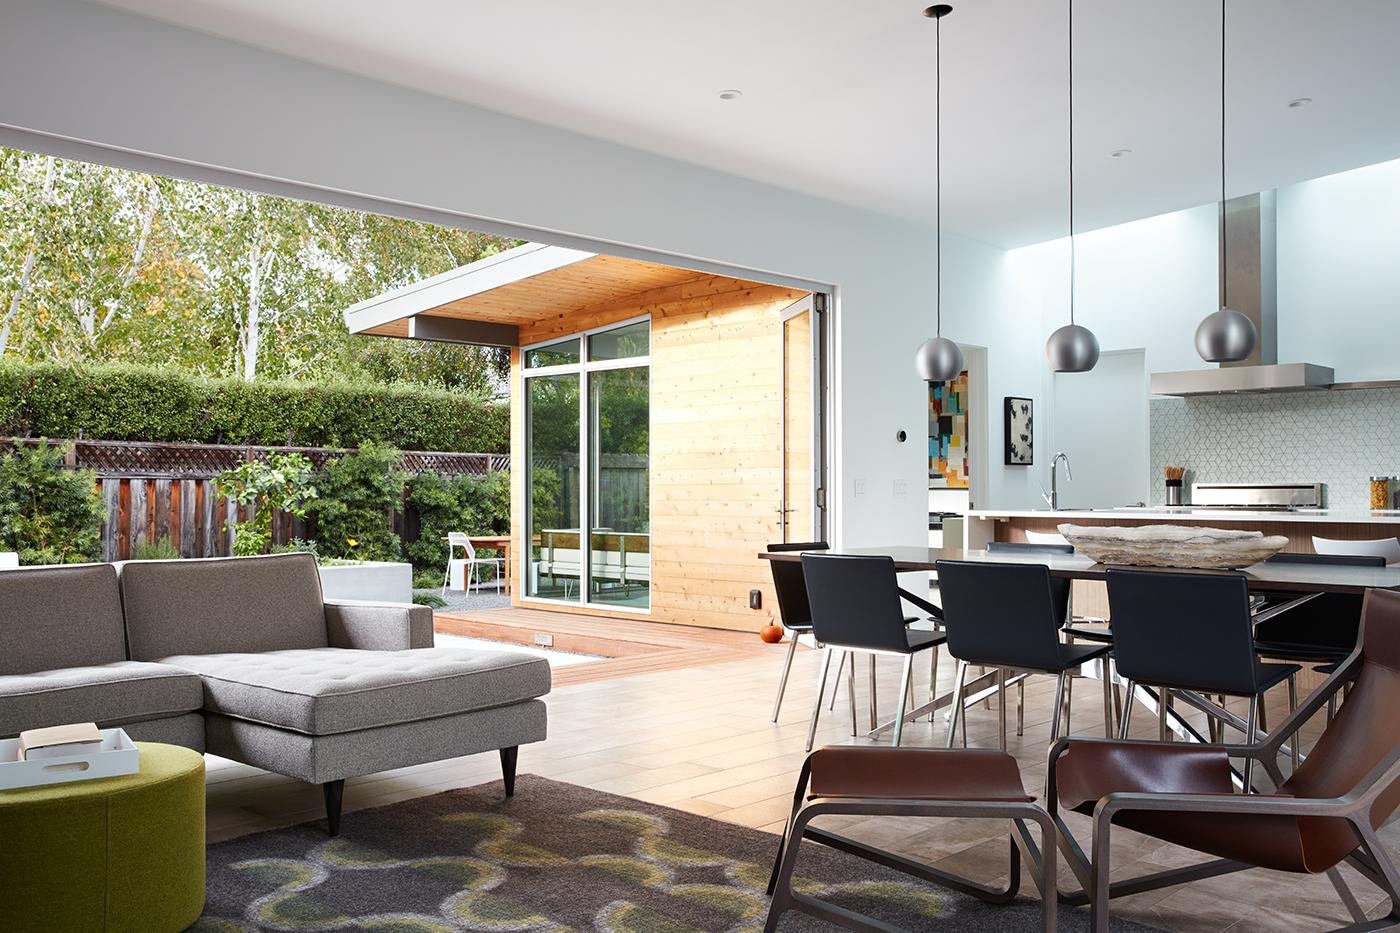 RETHINKING RENOVATIONS To Meet New Trends